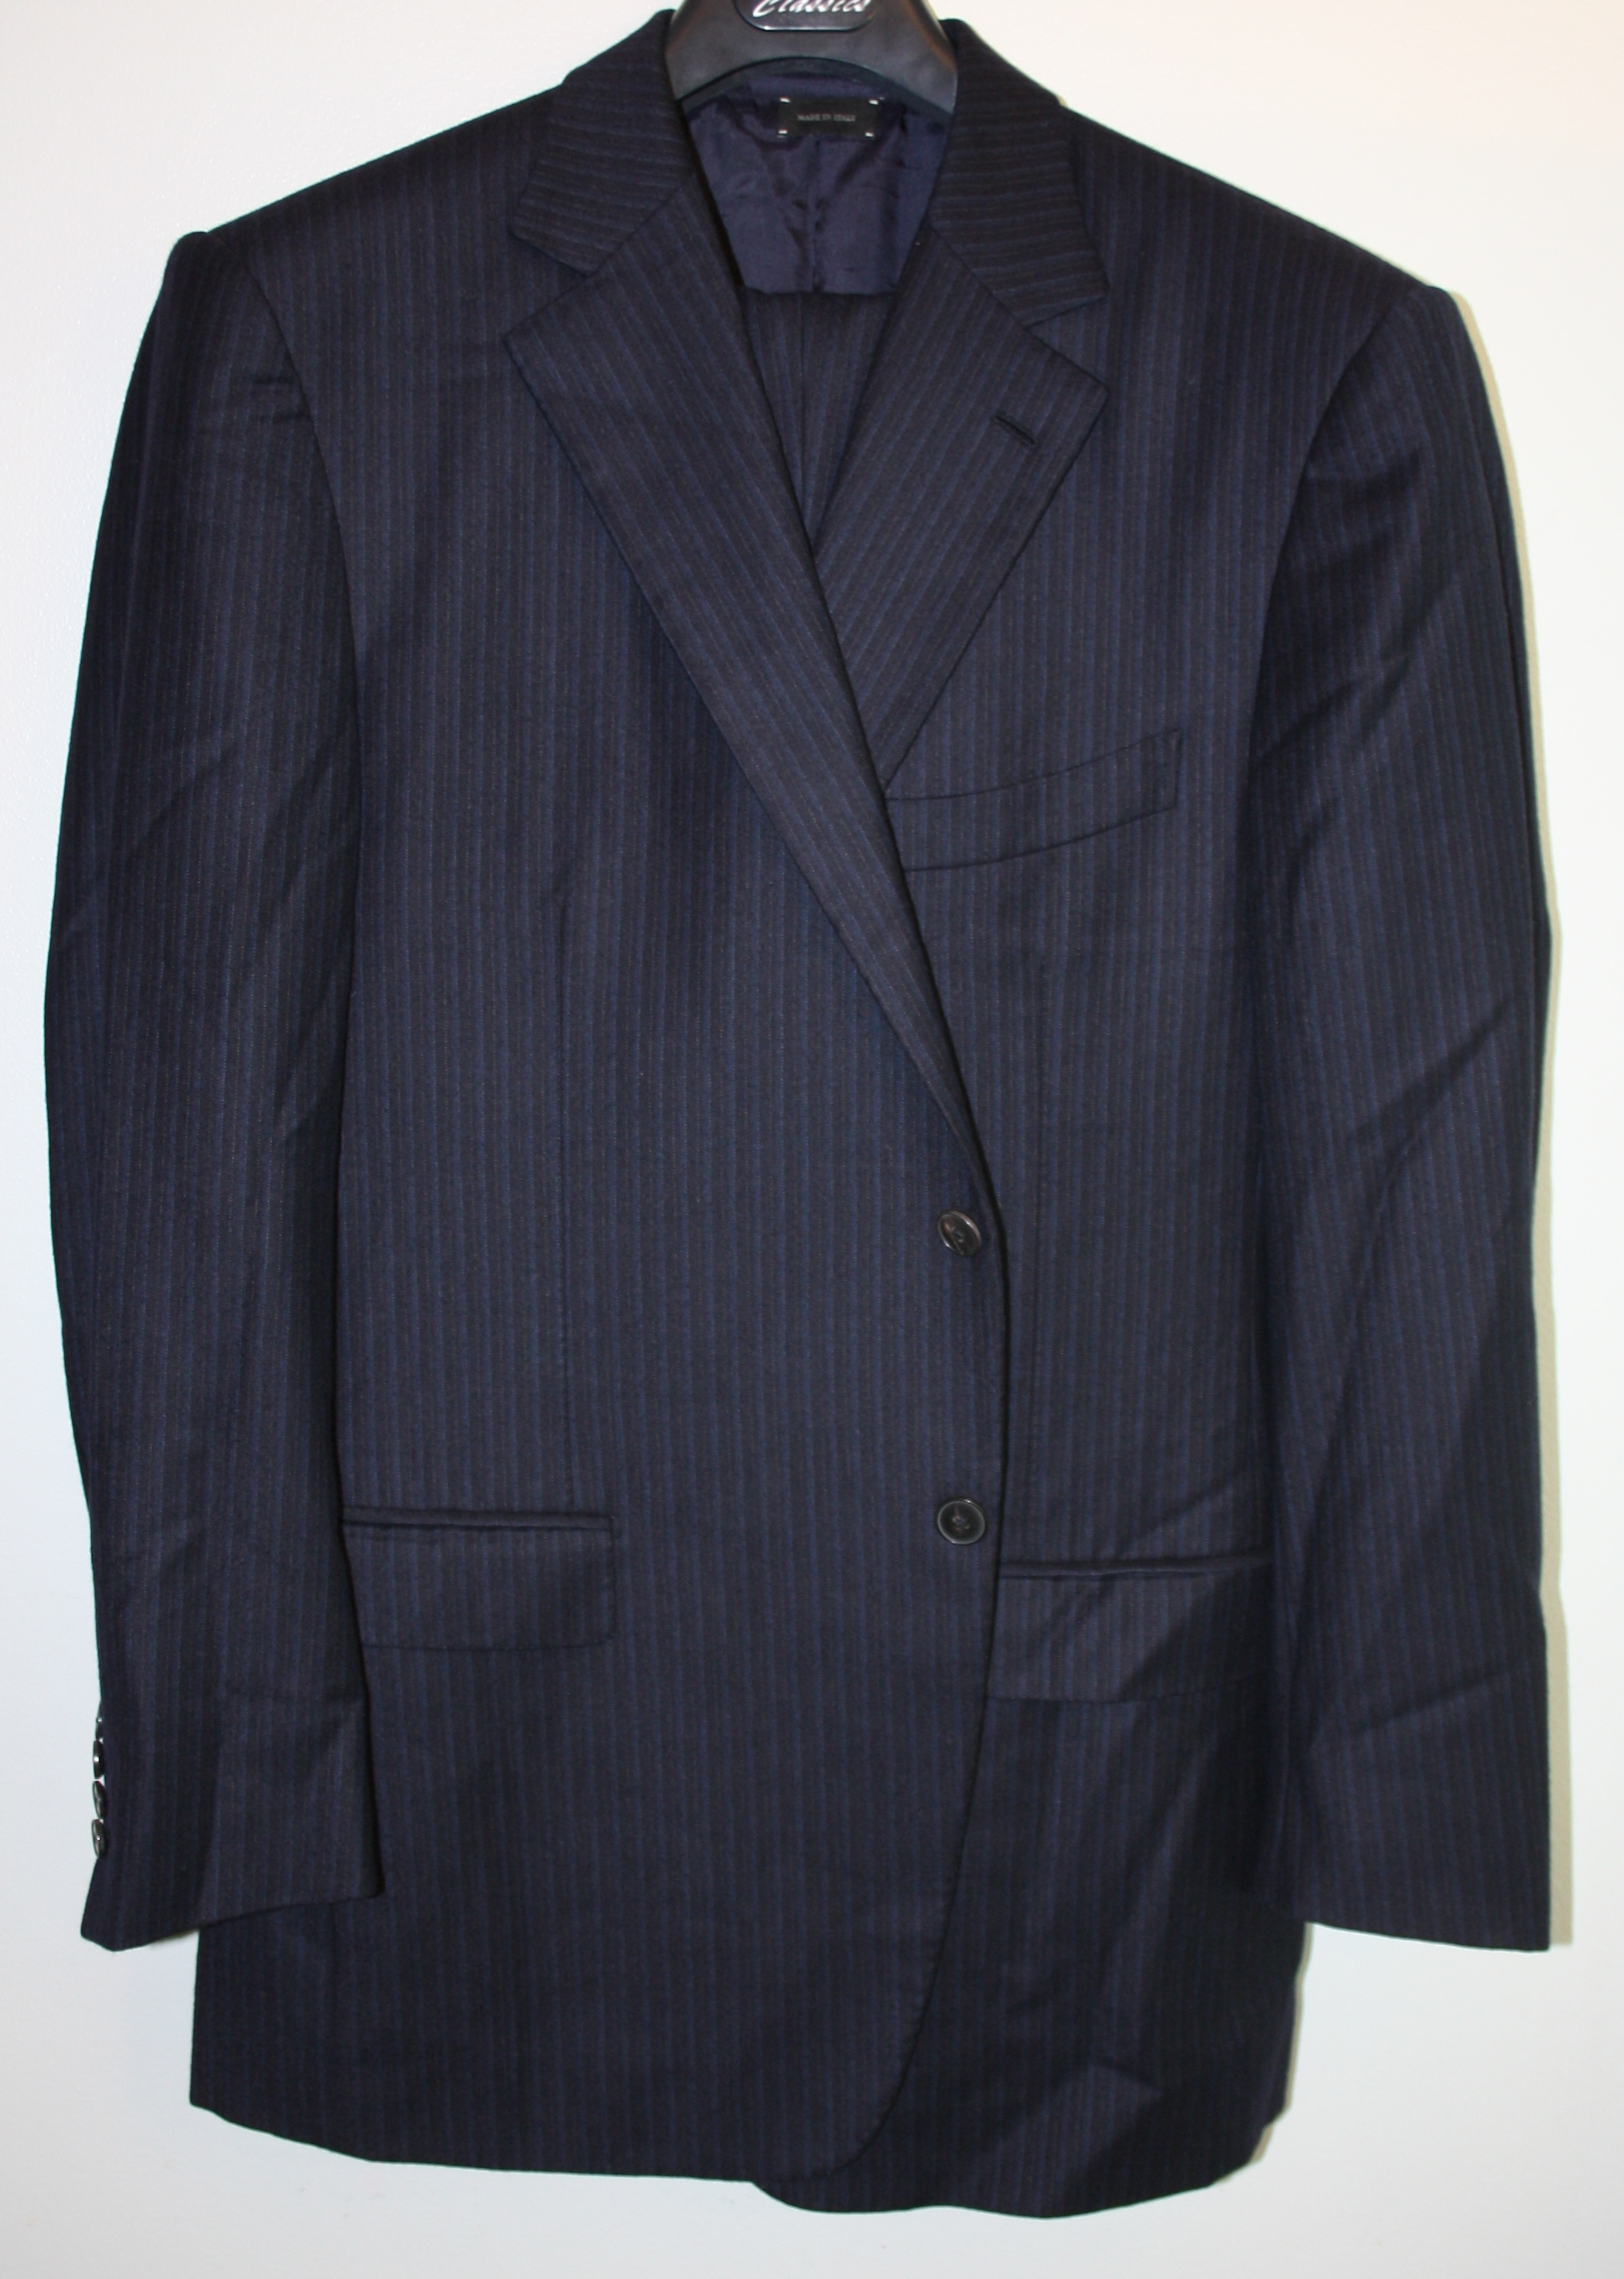 "dreamspace's photos in Navy Ermenegildo Zegna Couture XXX suit in 54/52 R/L EU, ""Heritage"" fabric."